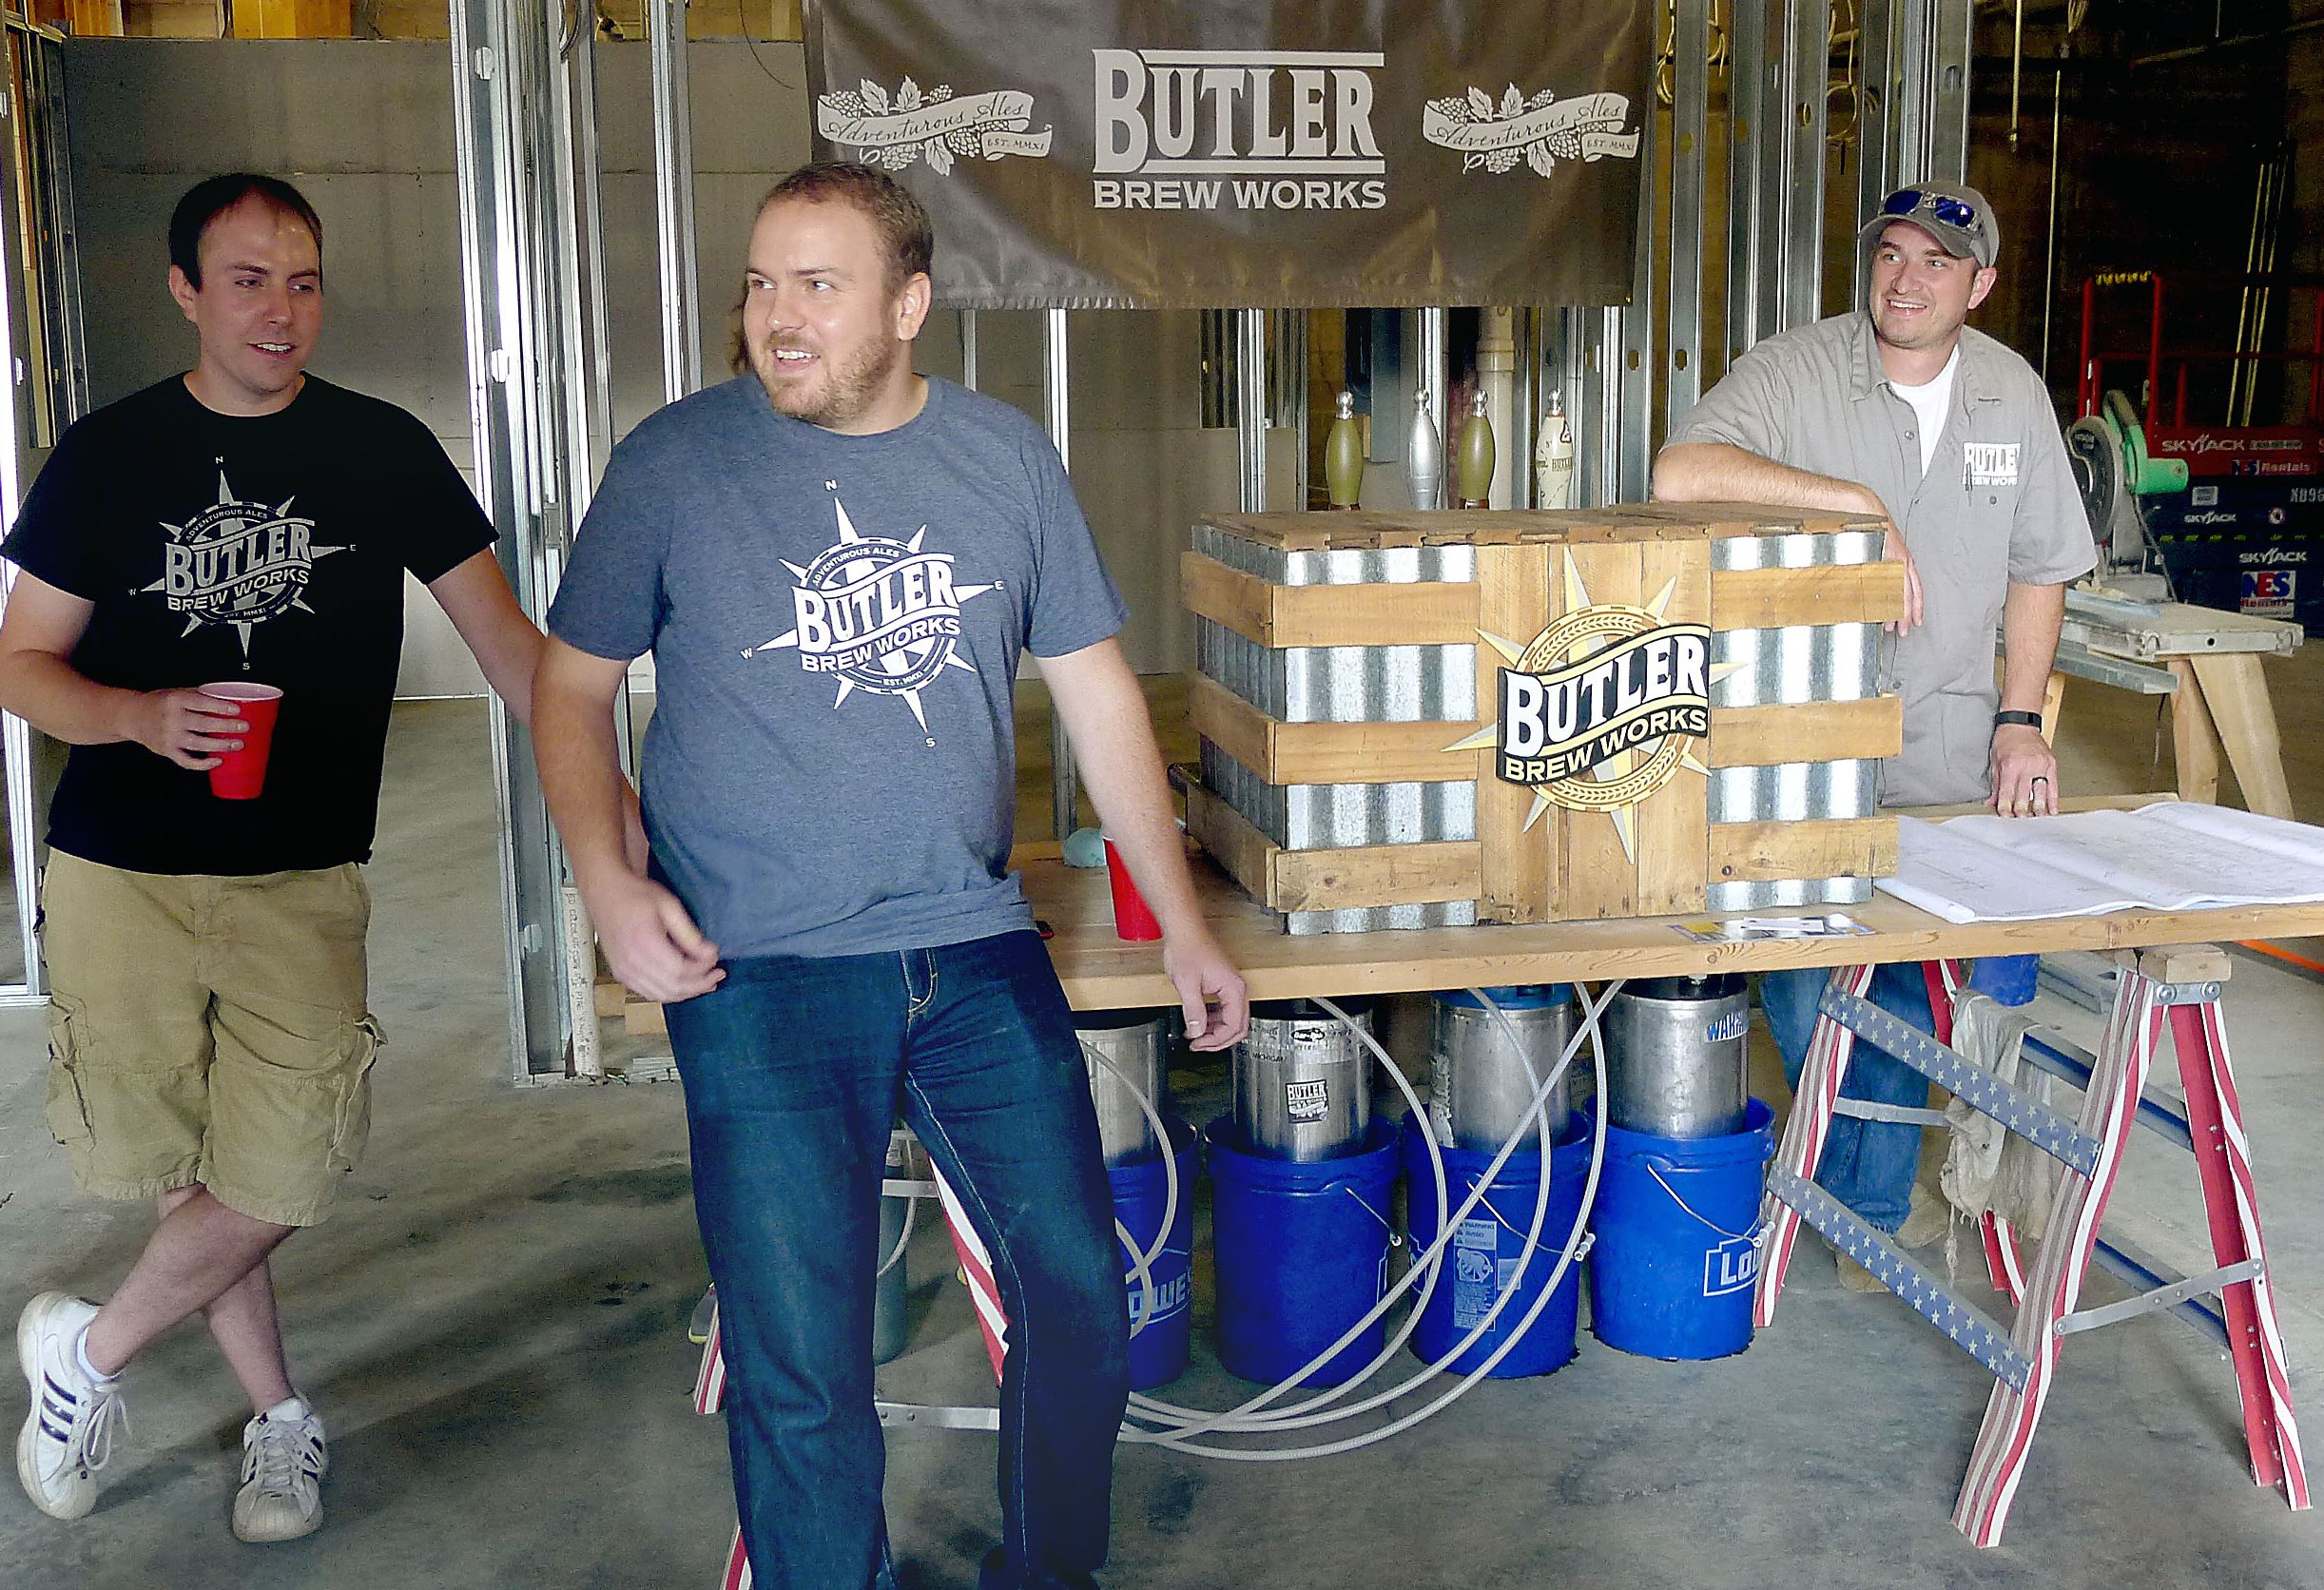 P1260094-2 The three partners behind Butler Brew Works are, from left, Nicholas Fazzoni, Travis Tuttle and Greg Clear.